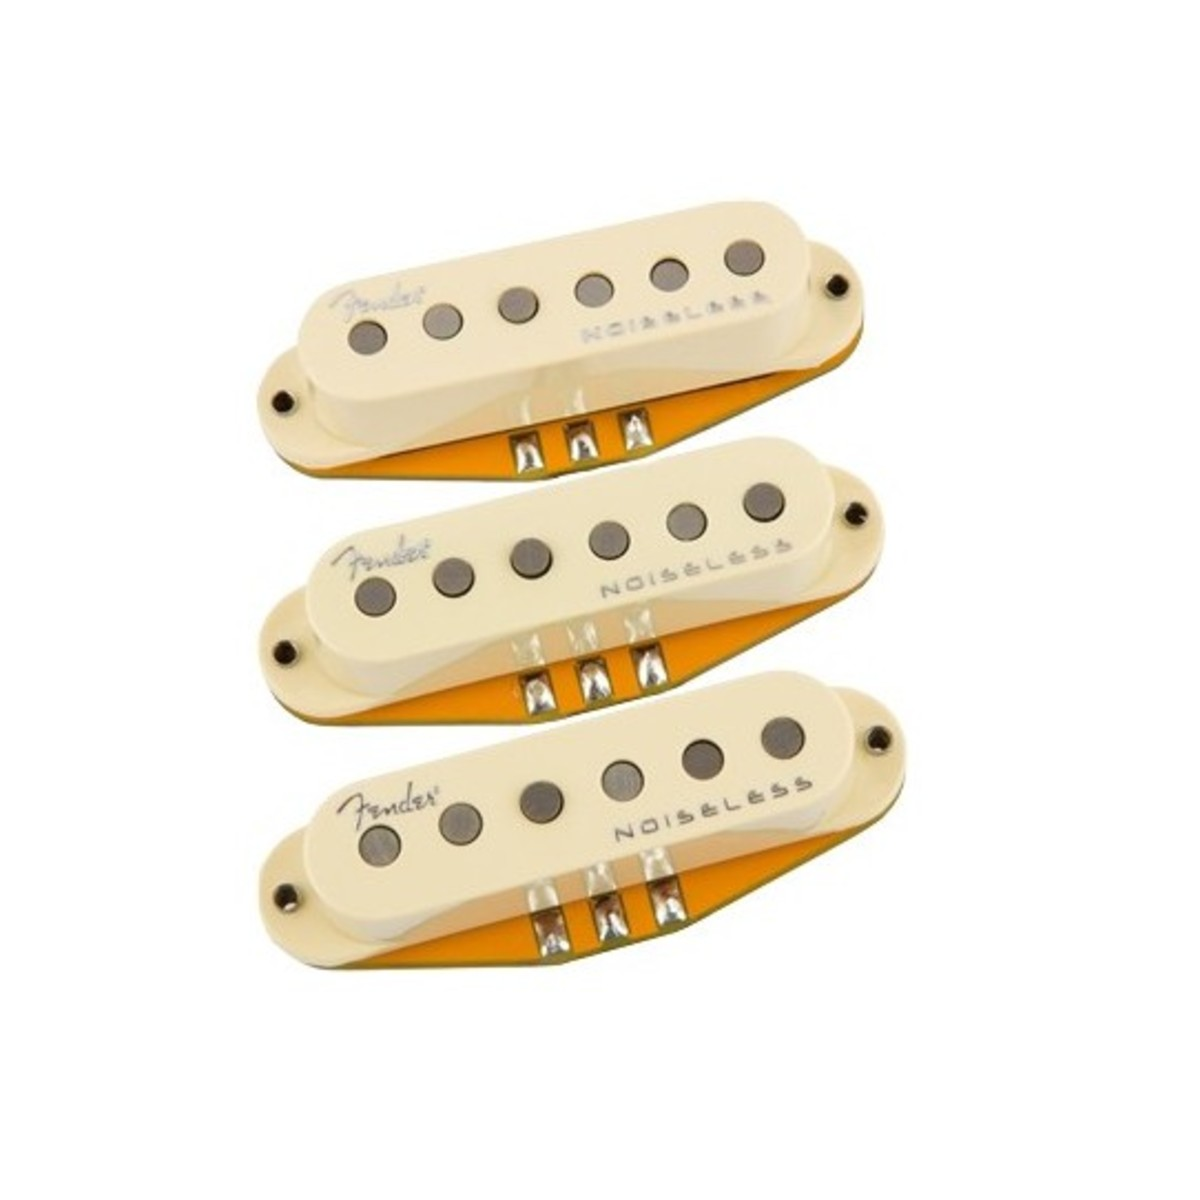 Fender Gen 4 Noiseless Stratocaster Pickups At Gear4music Com